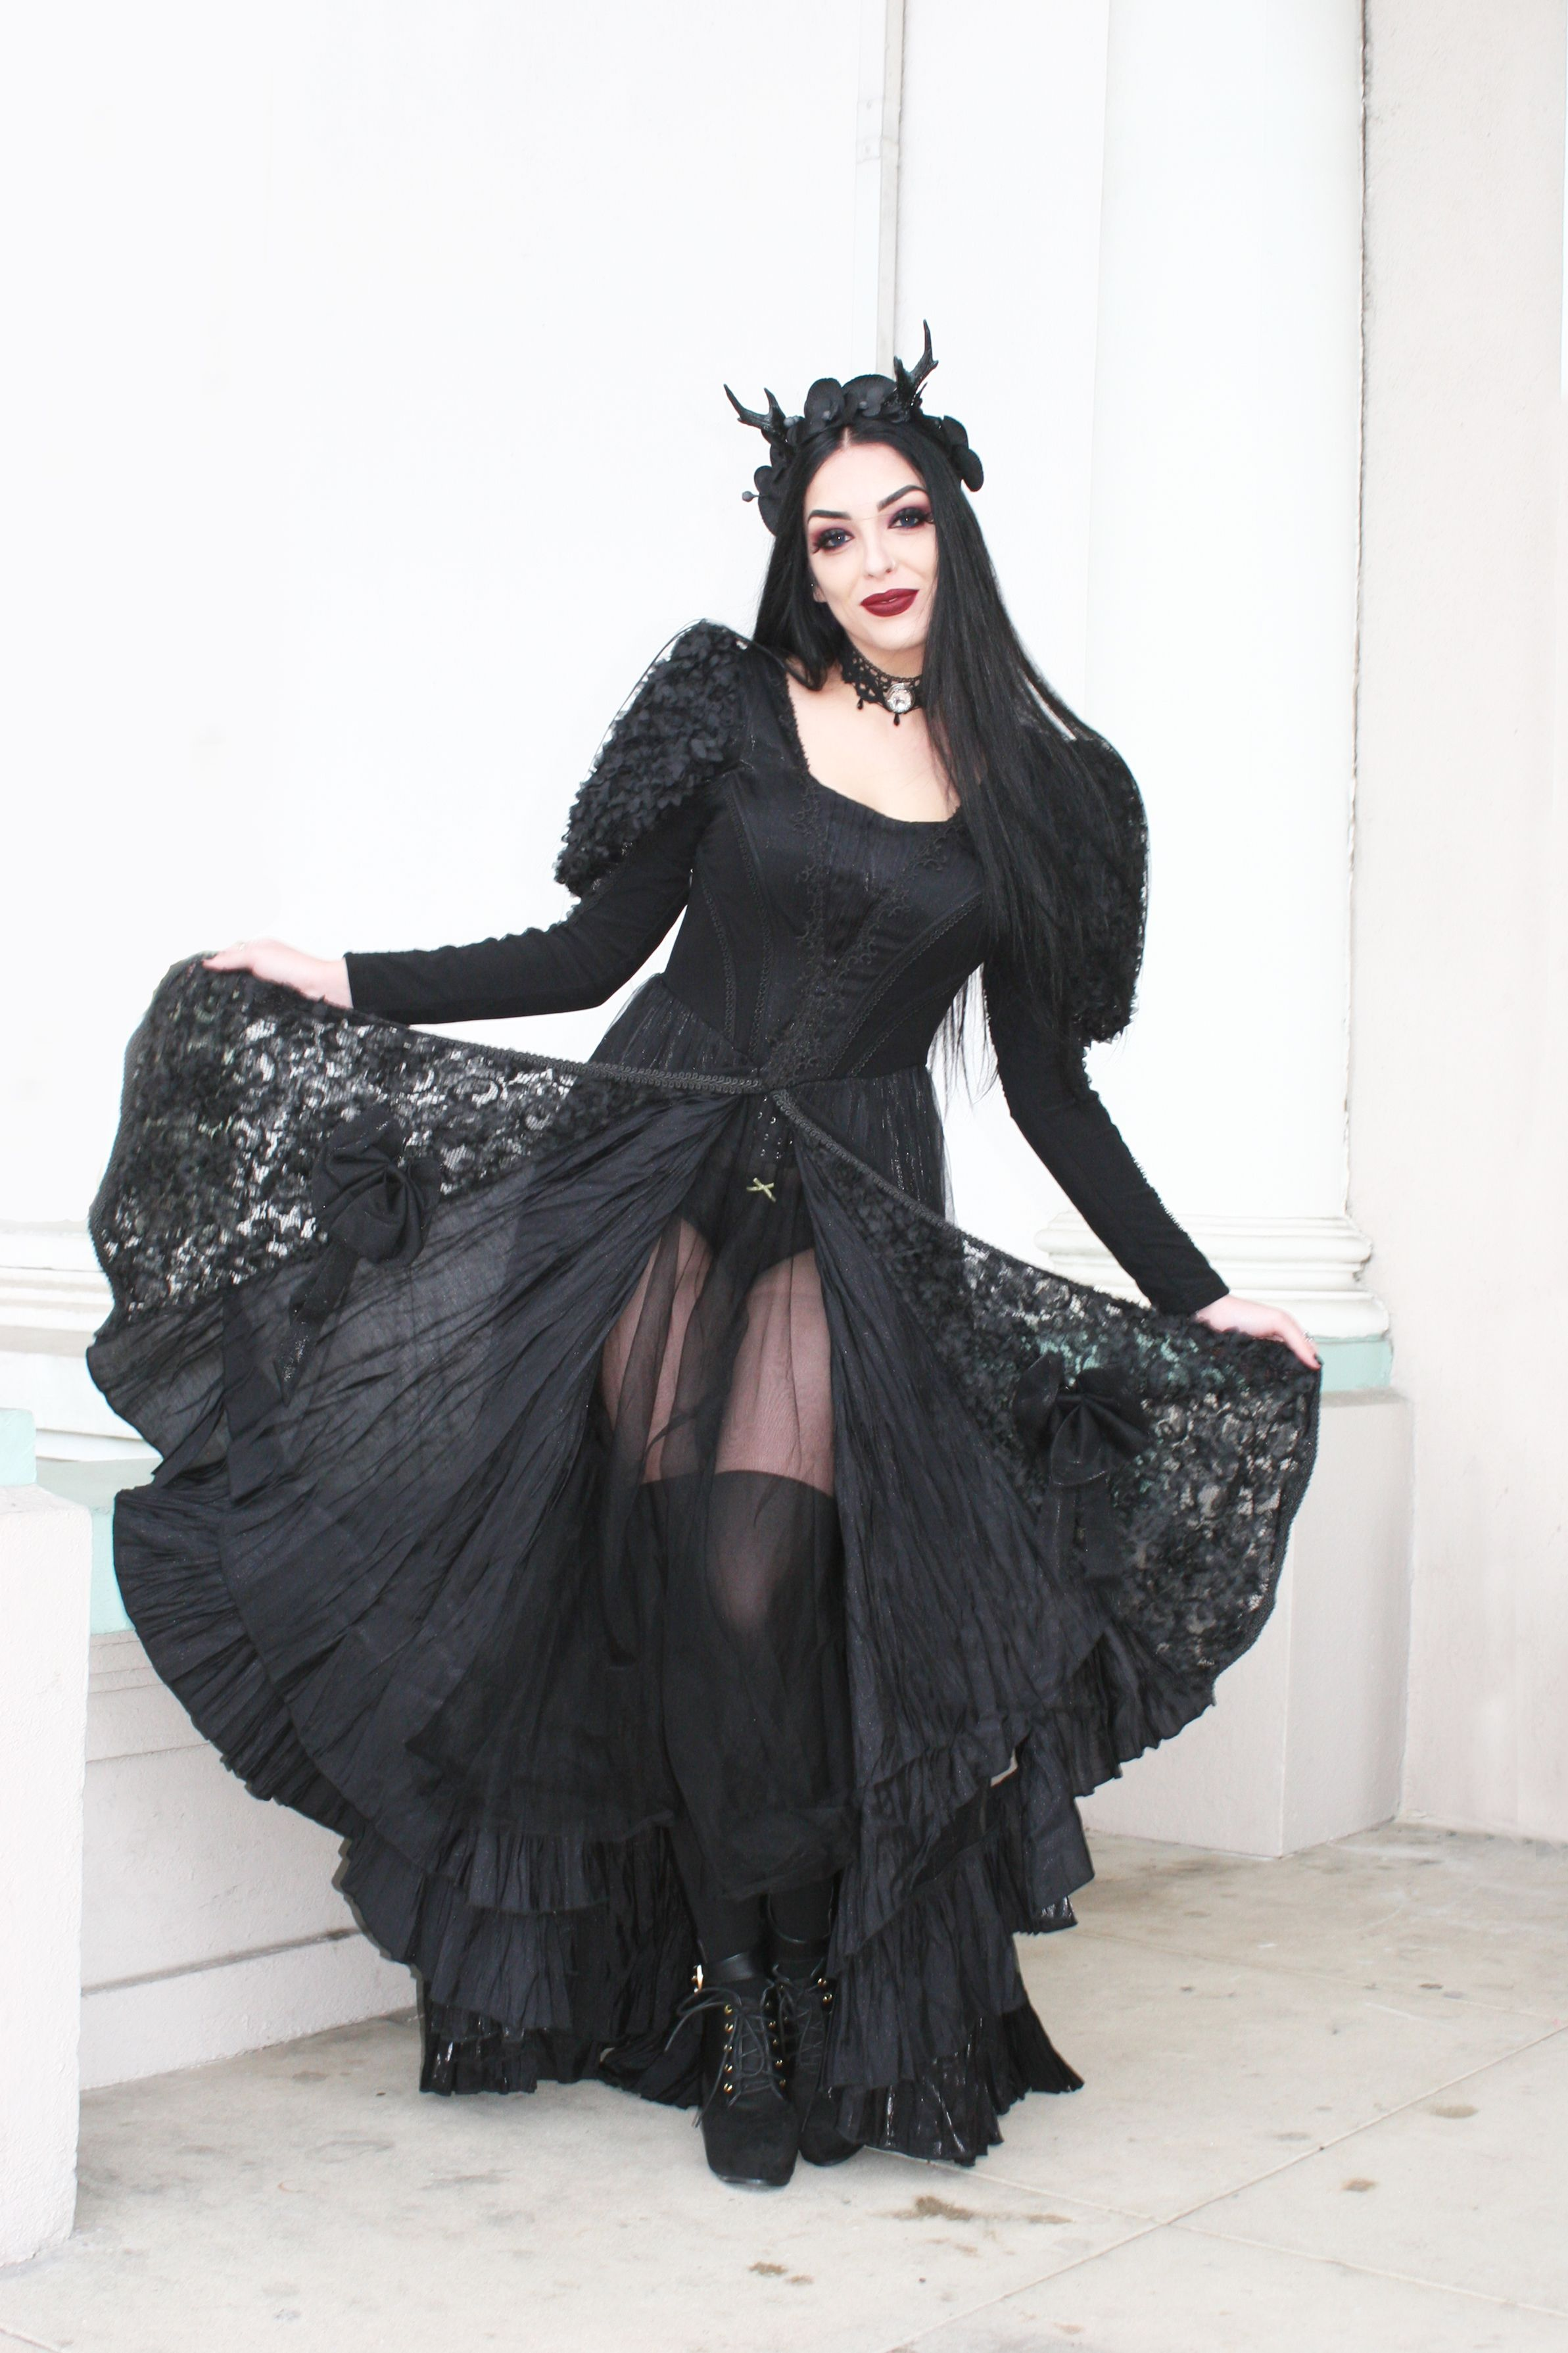 nadia saeed in punk rave ballgown available at wwwipso factocom and ipso factos fullerton ca store photo terri kennedy